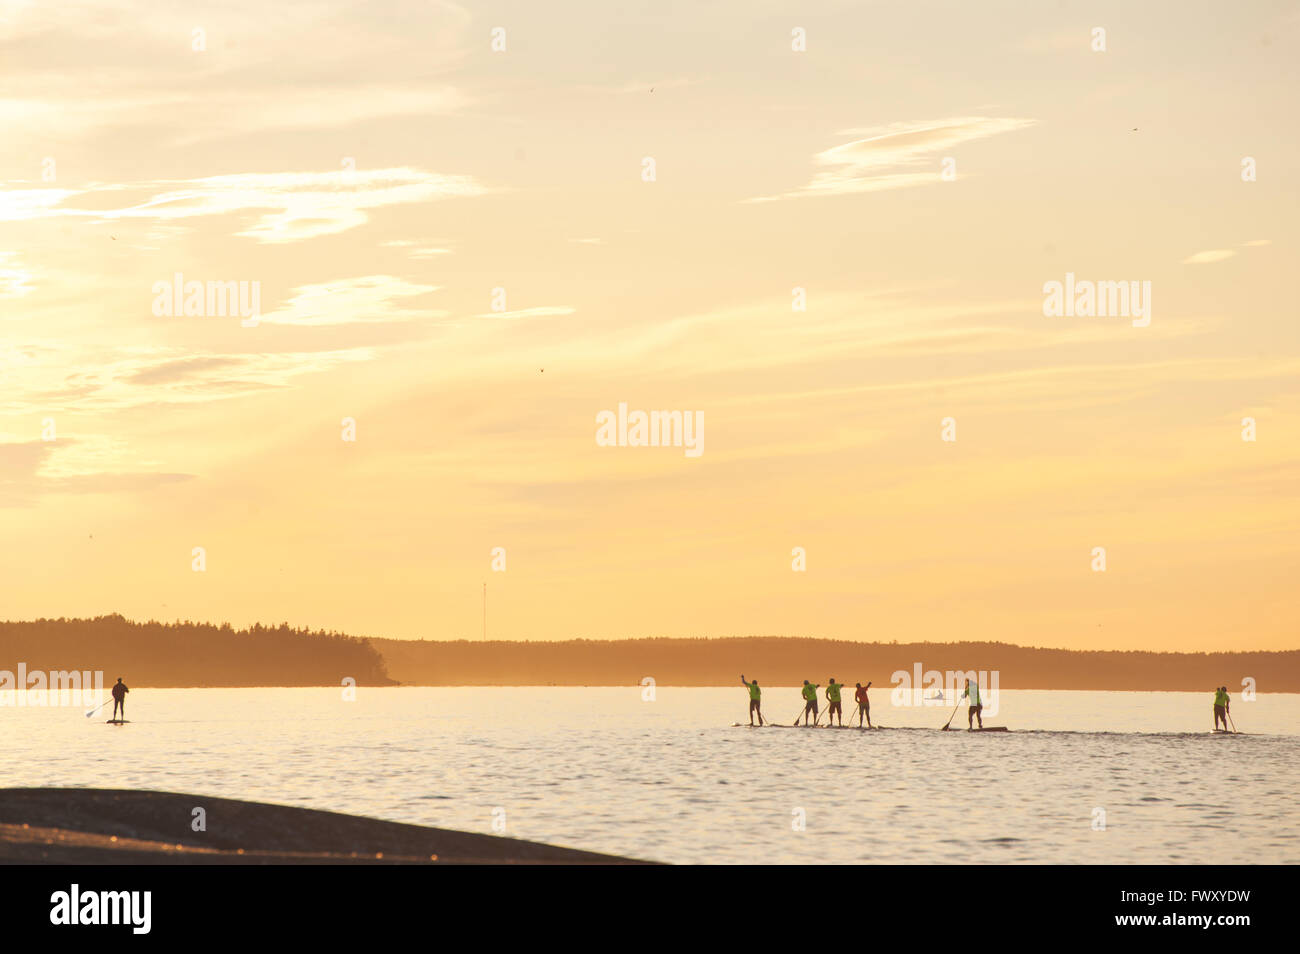 Finland, Varsinais-Suomi, Eura, People paddleboarding on lake at sunset - Stock Image